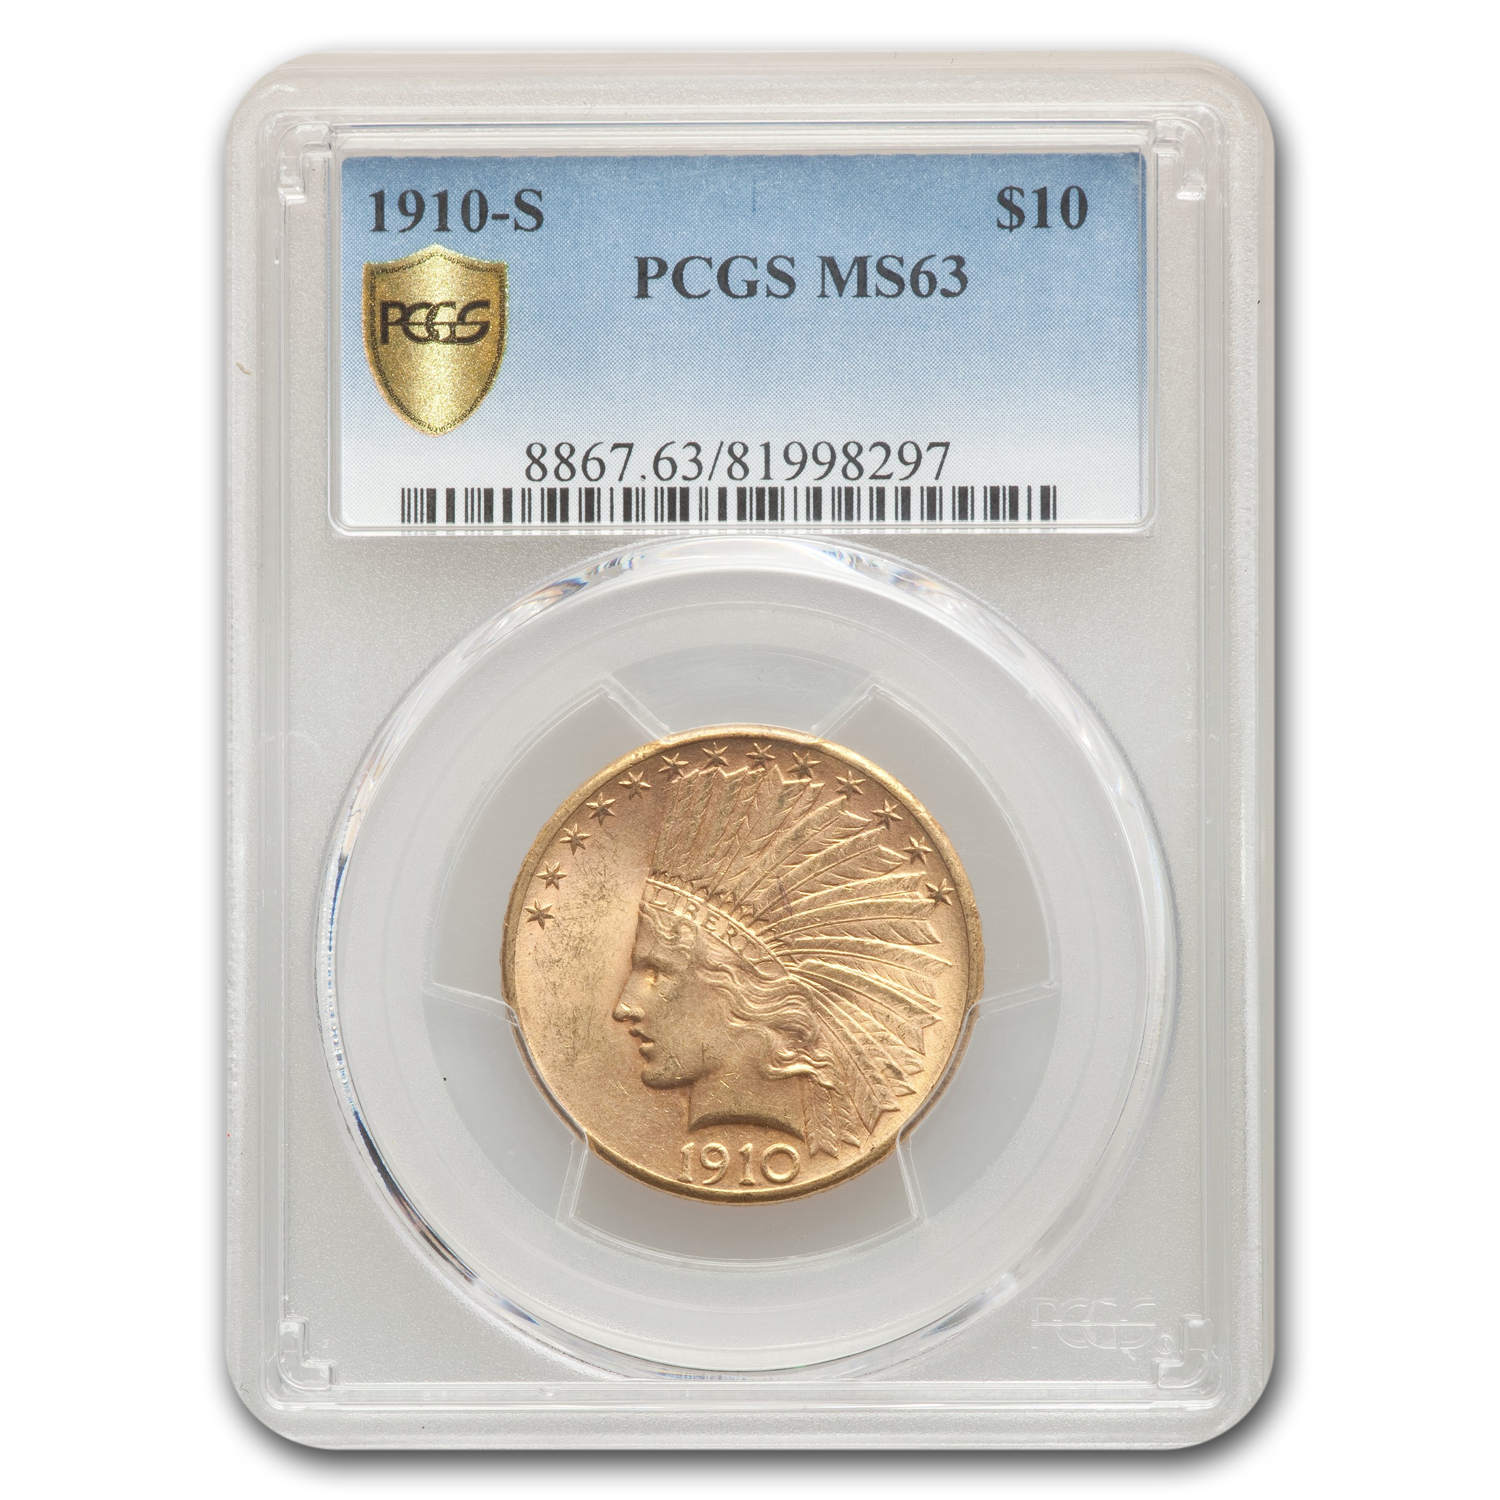 1910-S $10 Indian Gold Eagle MS-63 PCGS